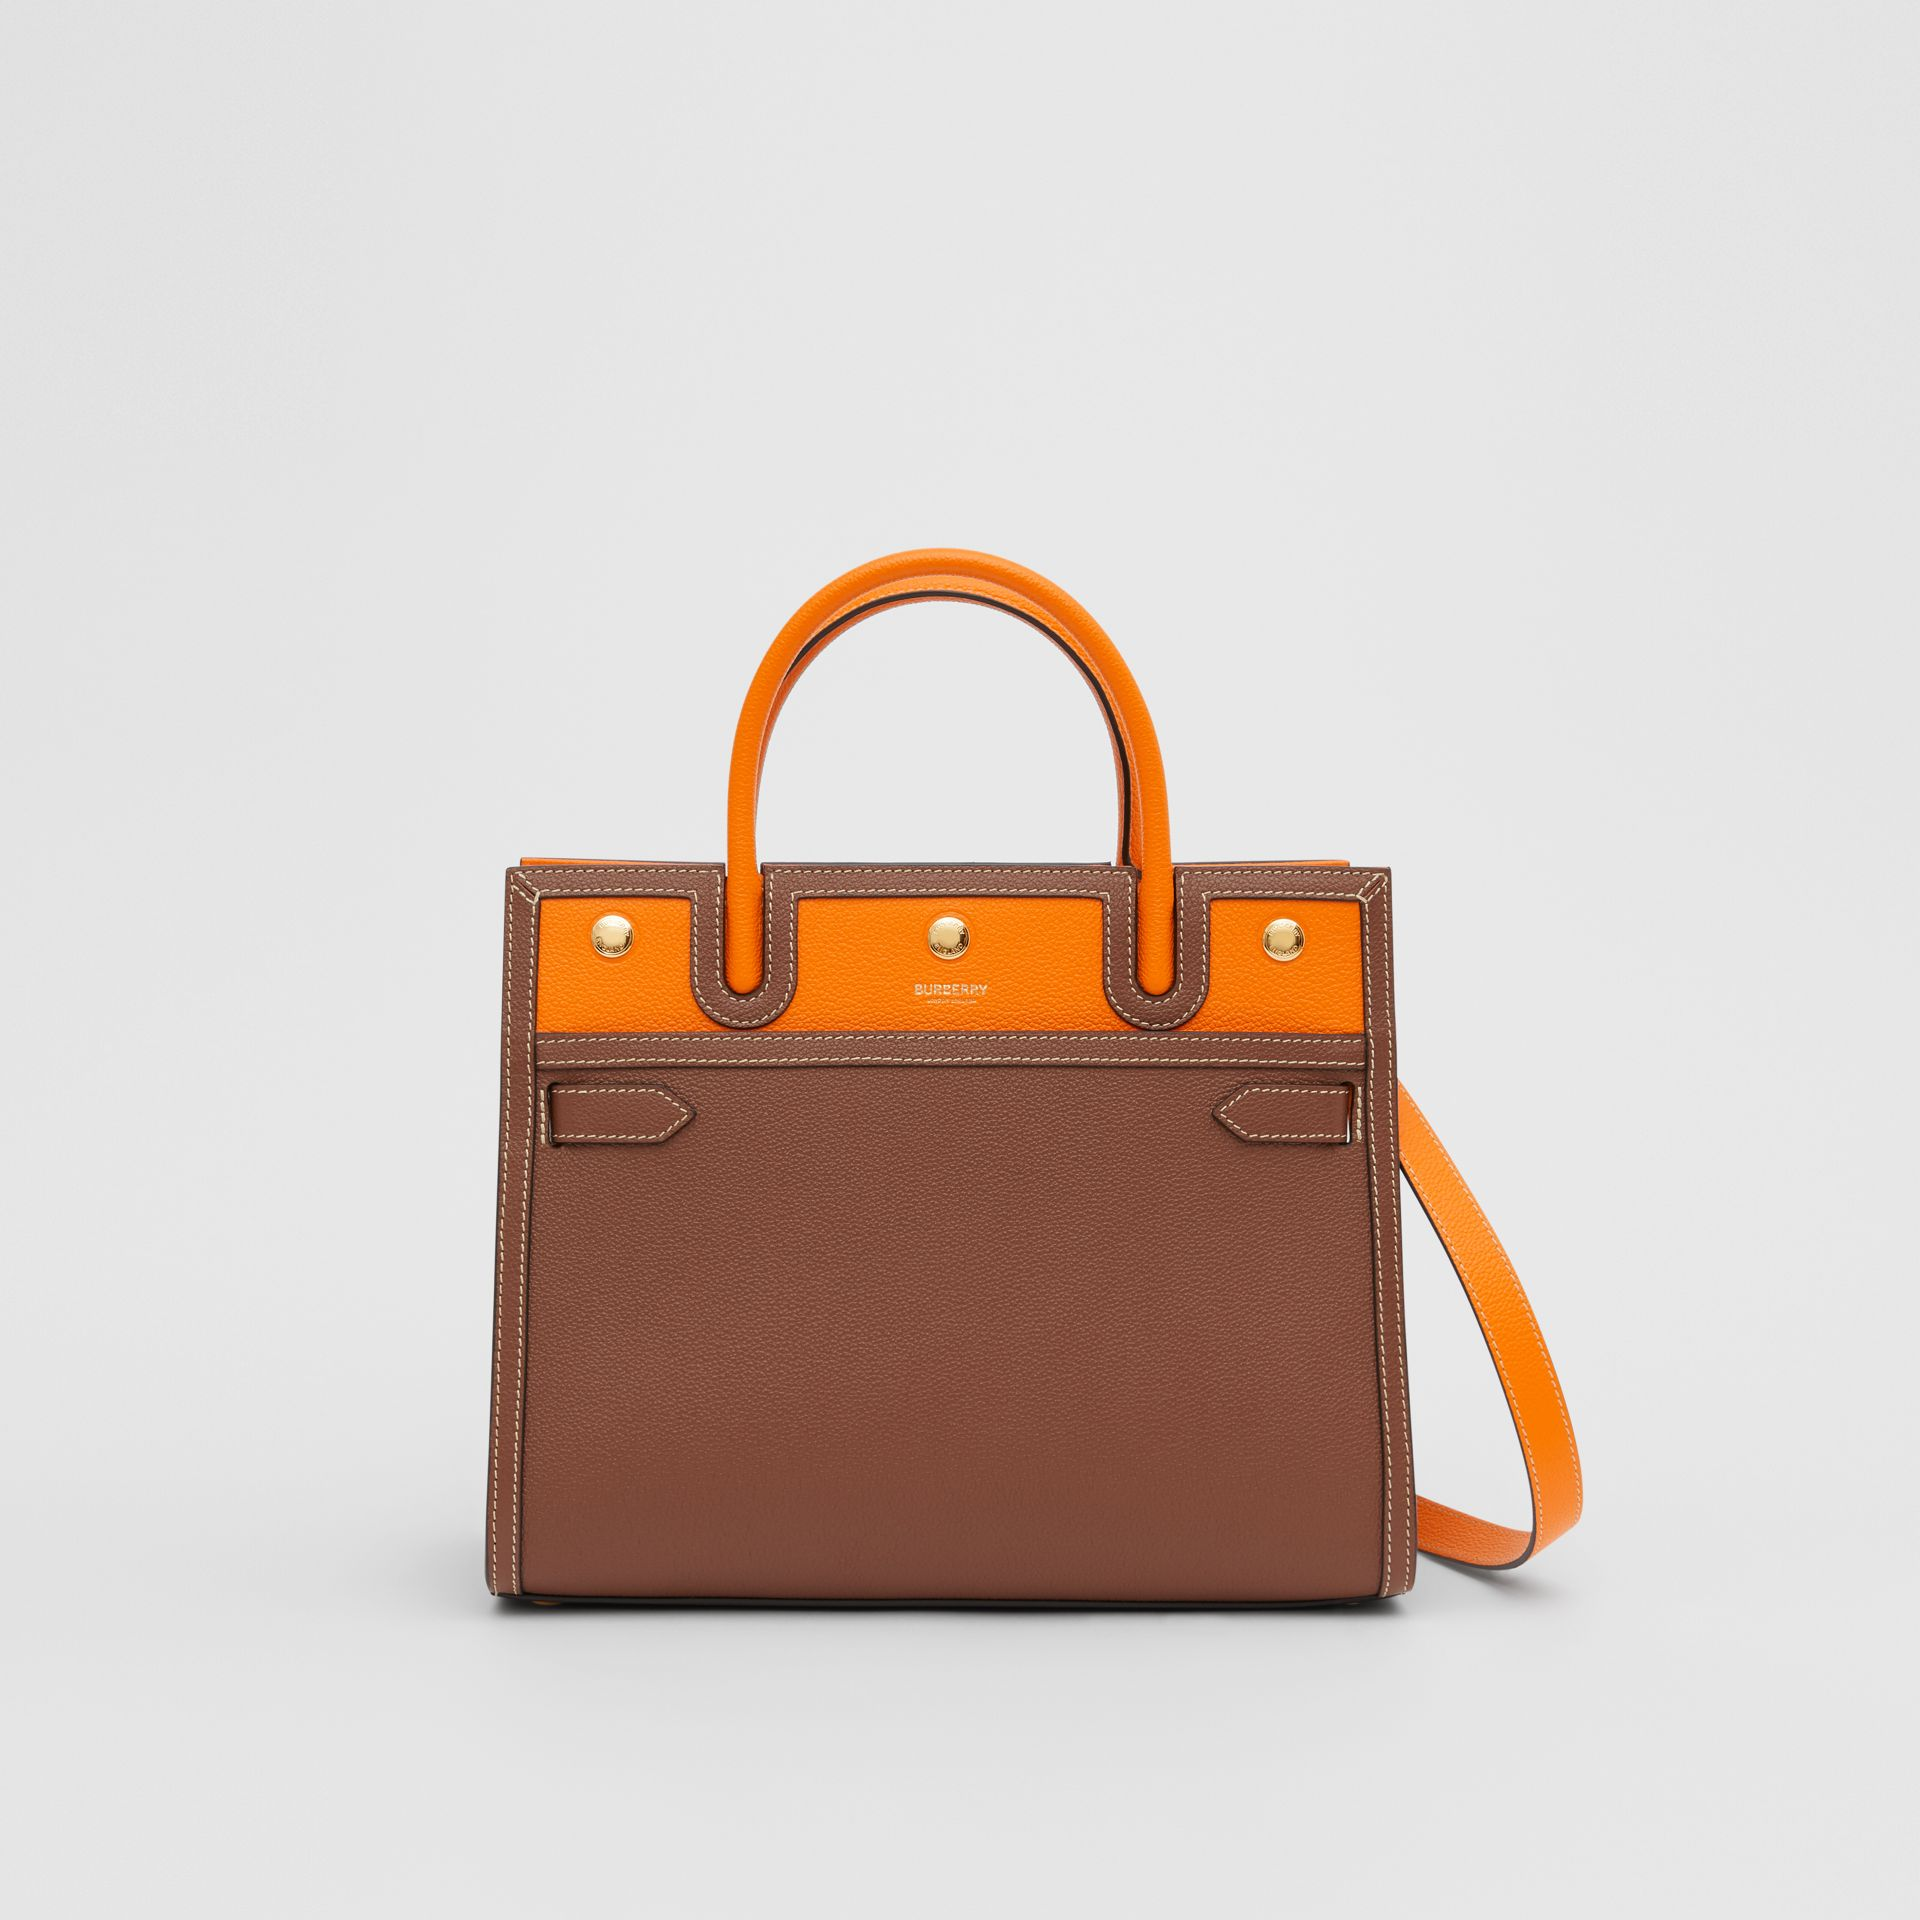 Small Leather Two-handle Title Bag in Tan/bright Orange - Women | Burberry Canada - gallery image 0